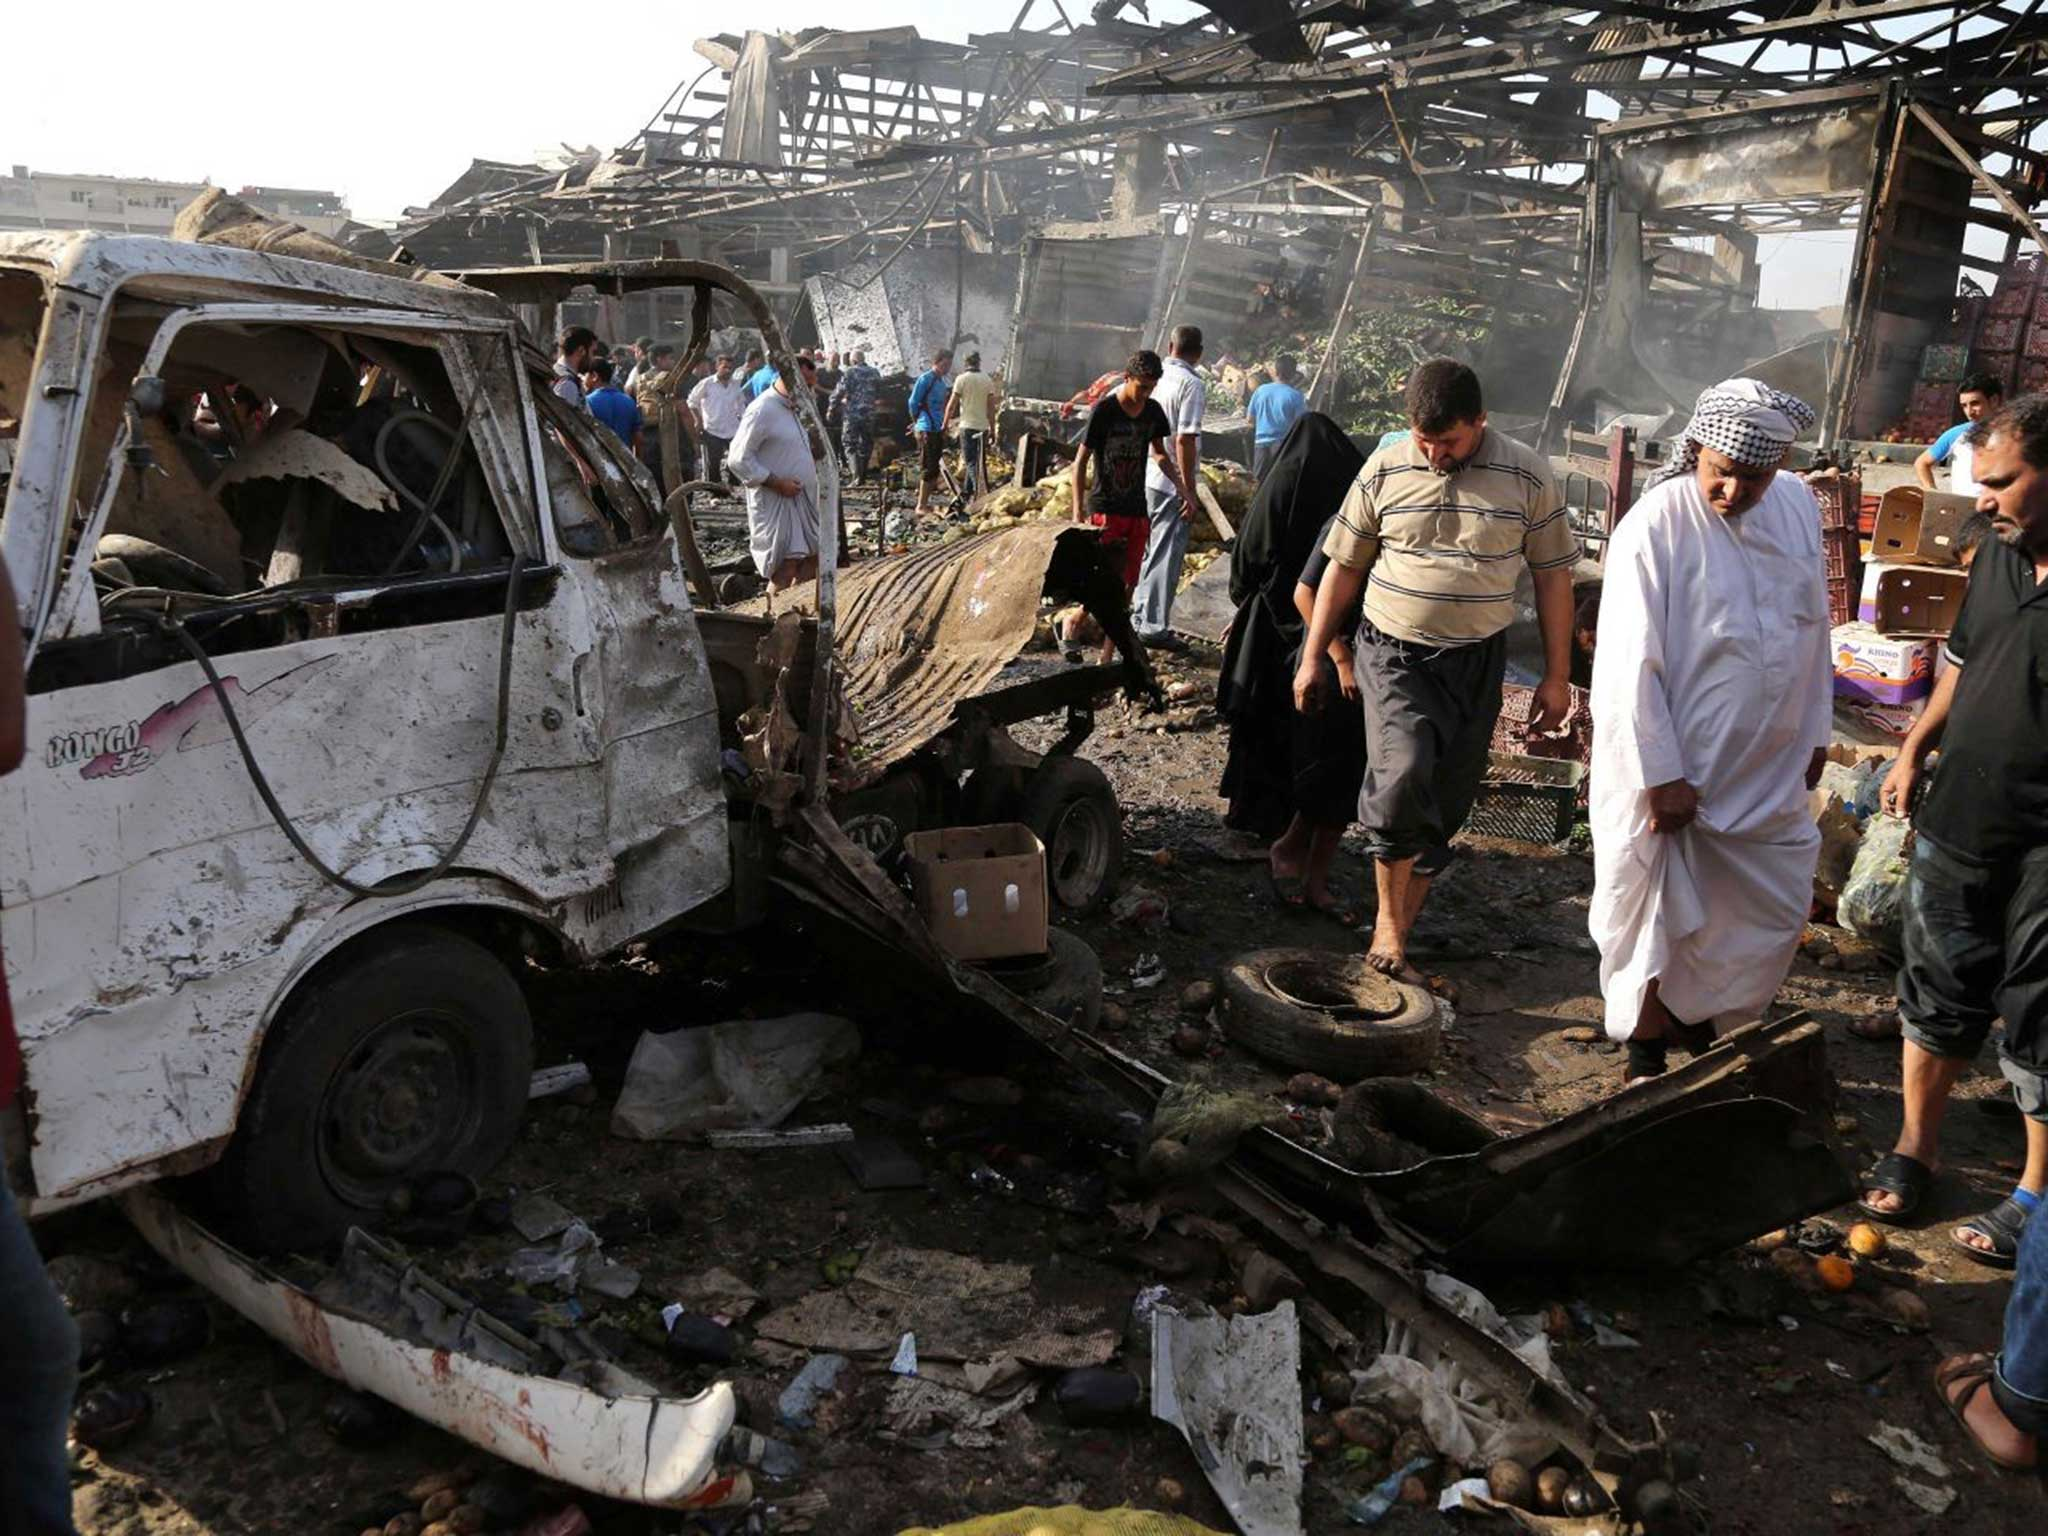 Baghdad truck bomb: More than 60 dead after explosion in